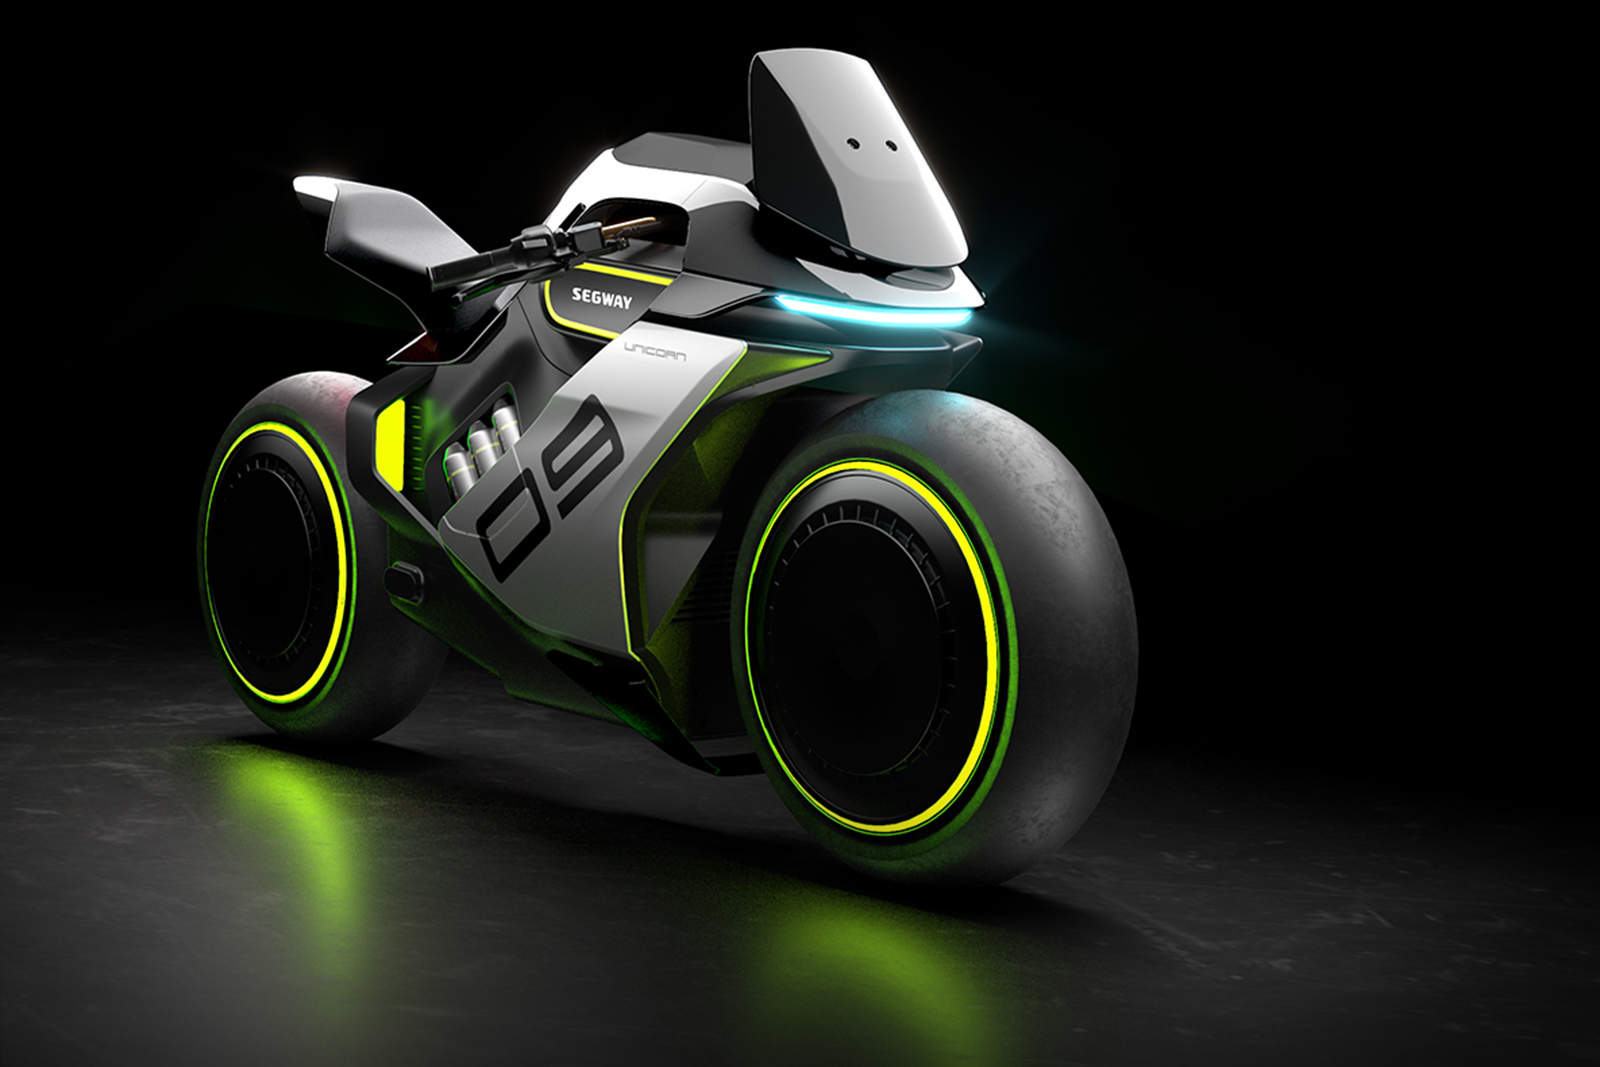 The outrageous Segway Apex H2 - a hydrogen-hybrid sports motorcycle